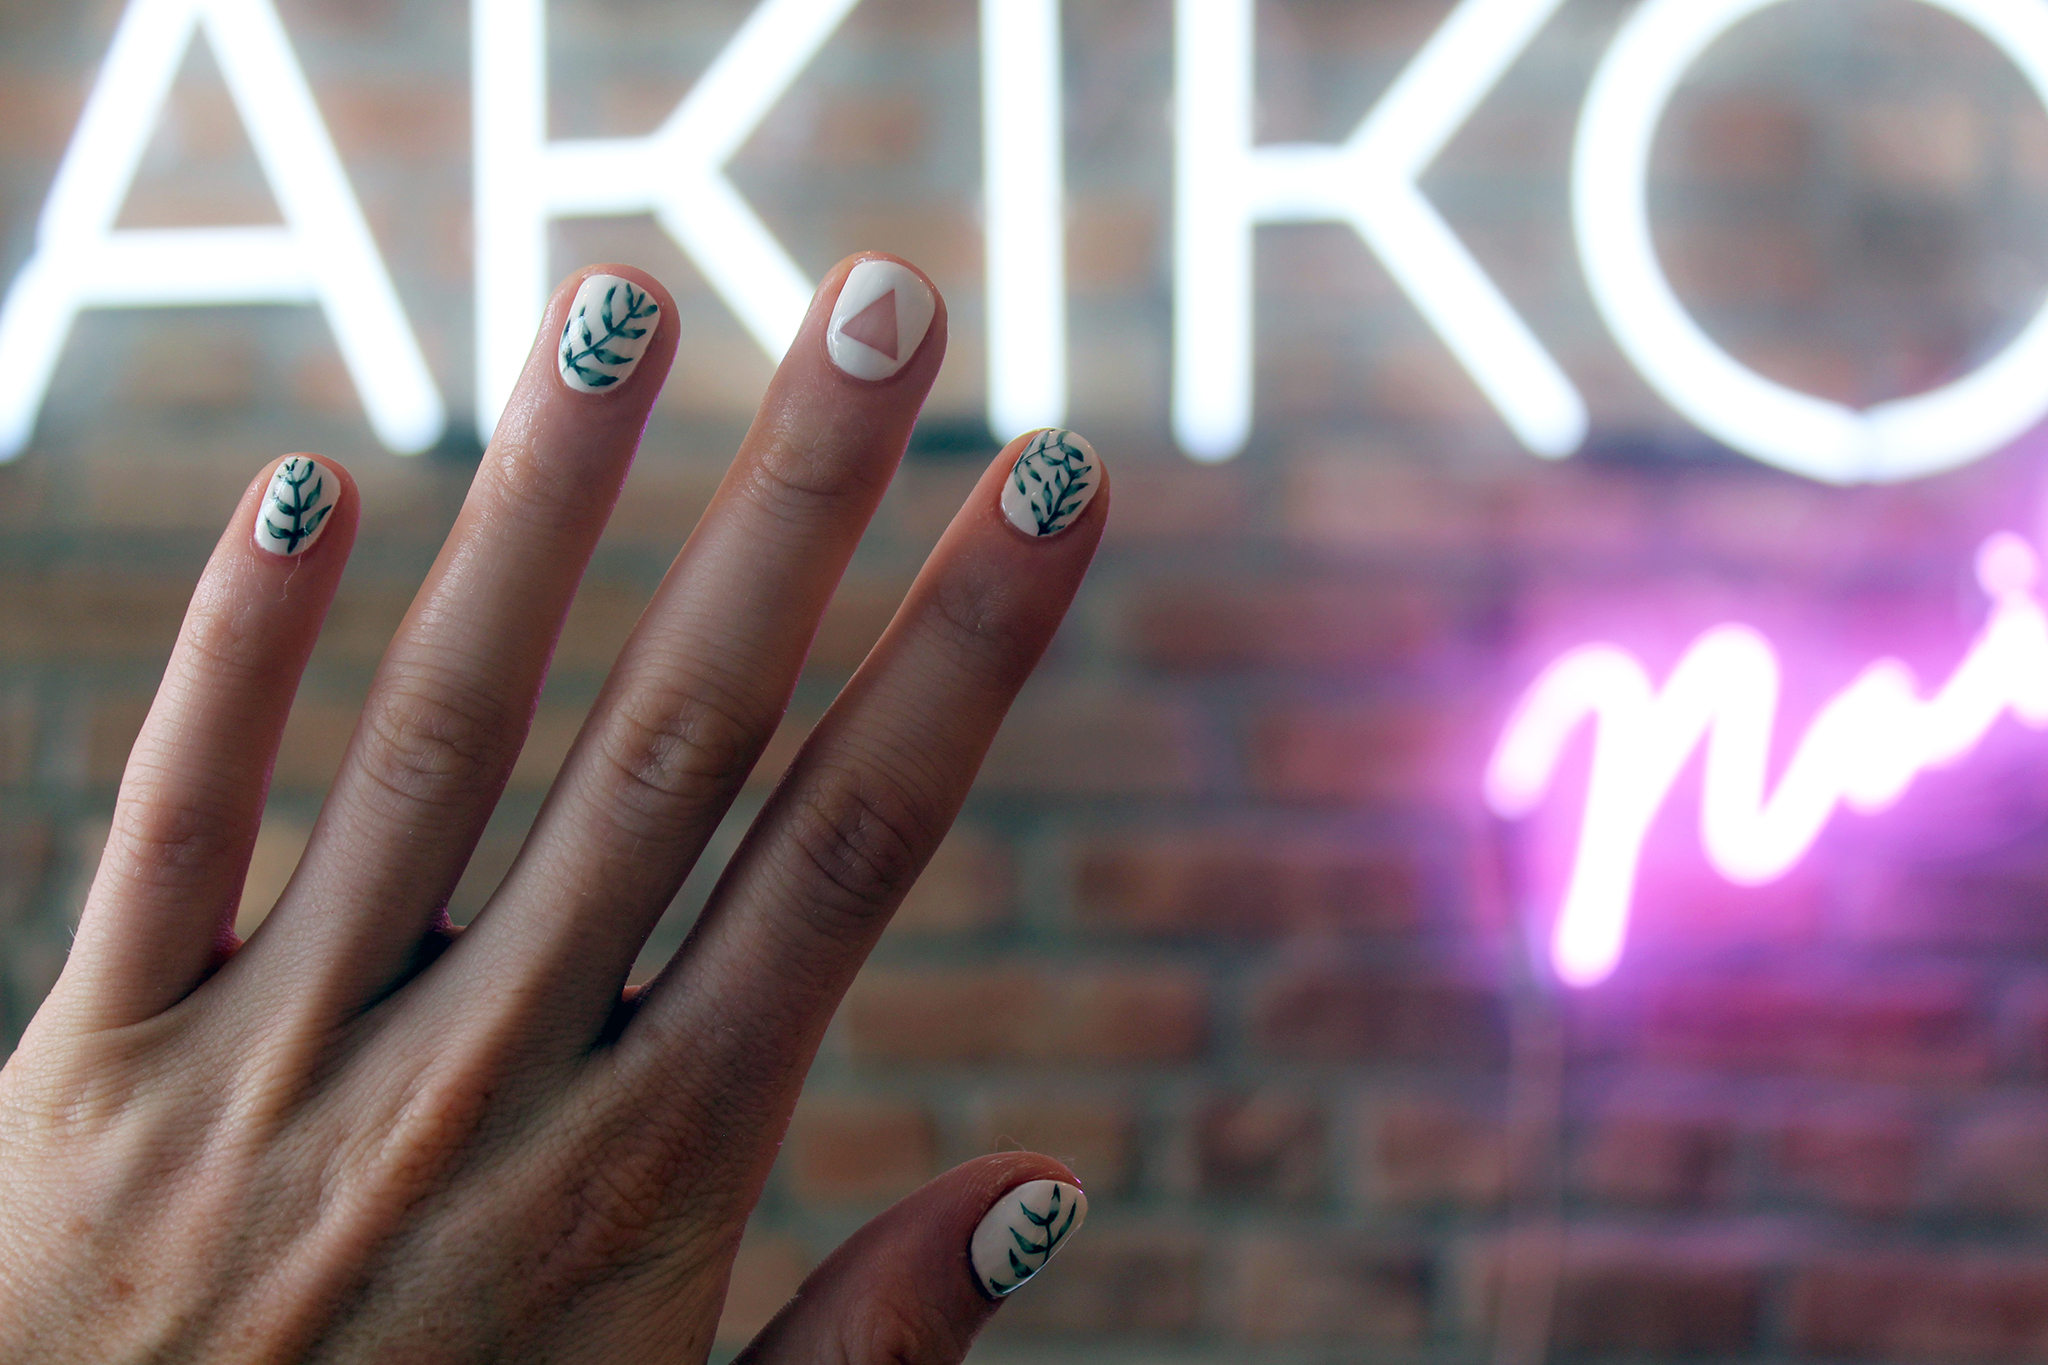 Nail salons in nyc for manicures pedicures and nail designs akiko nails prinsesfo Image collections